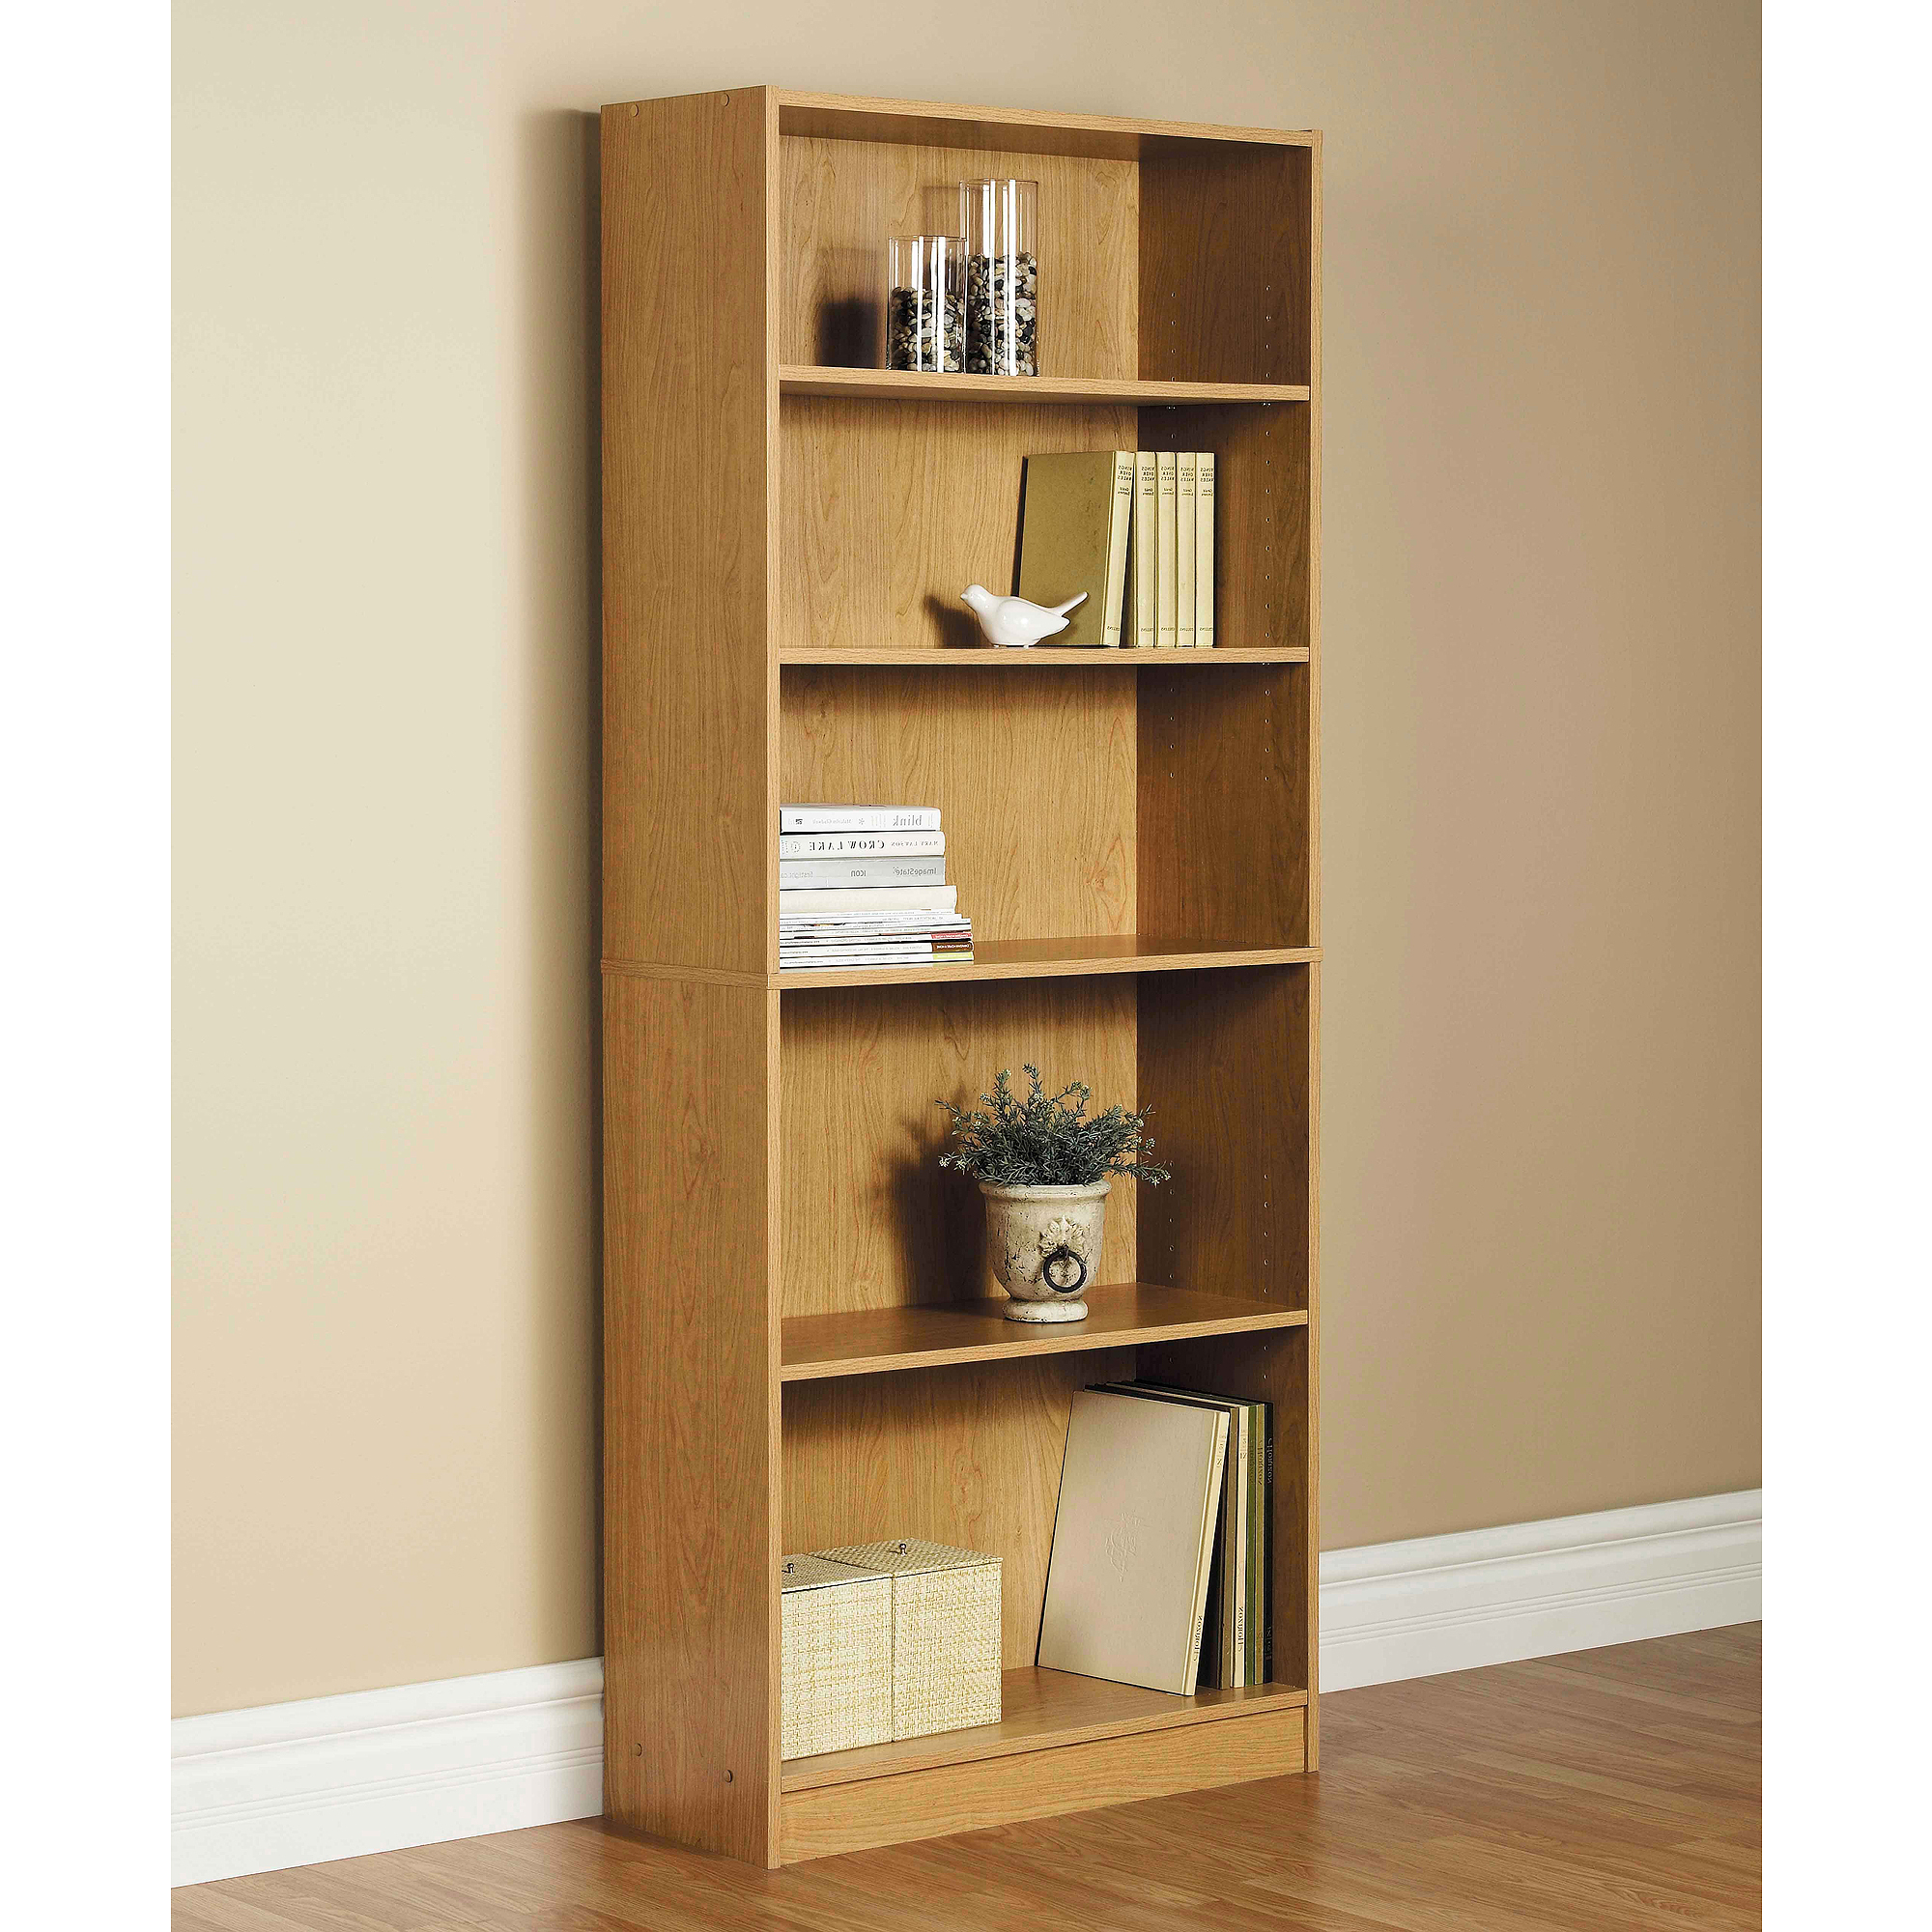 2020 How To Select Shelf Bookcase – Home Decor Ideas With Standard Bookcases (View 1 of 20)